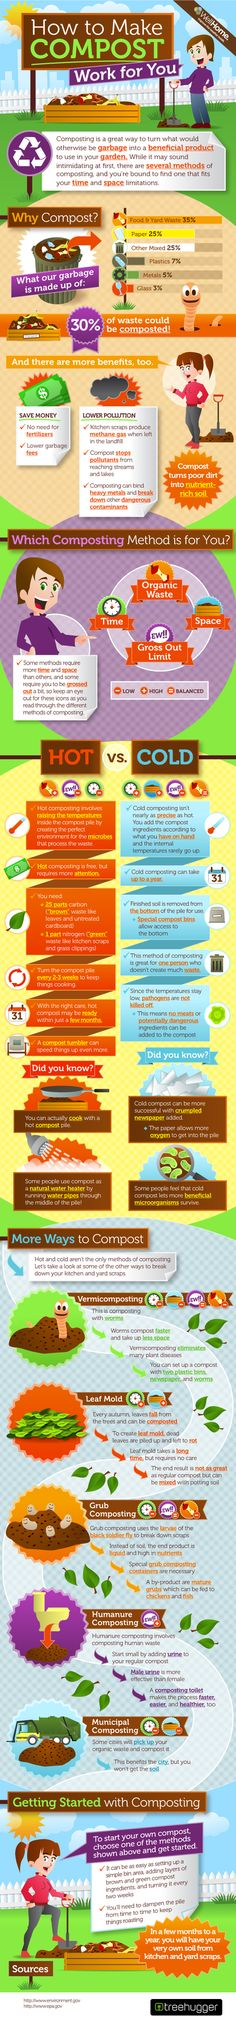 Curious about compost? This infographic may answer your questions.